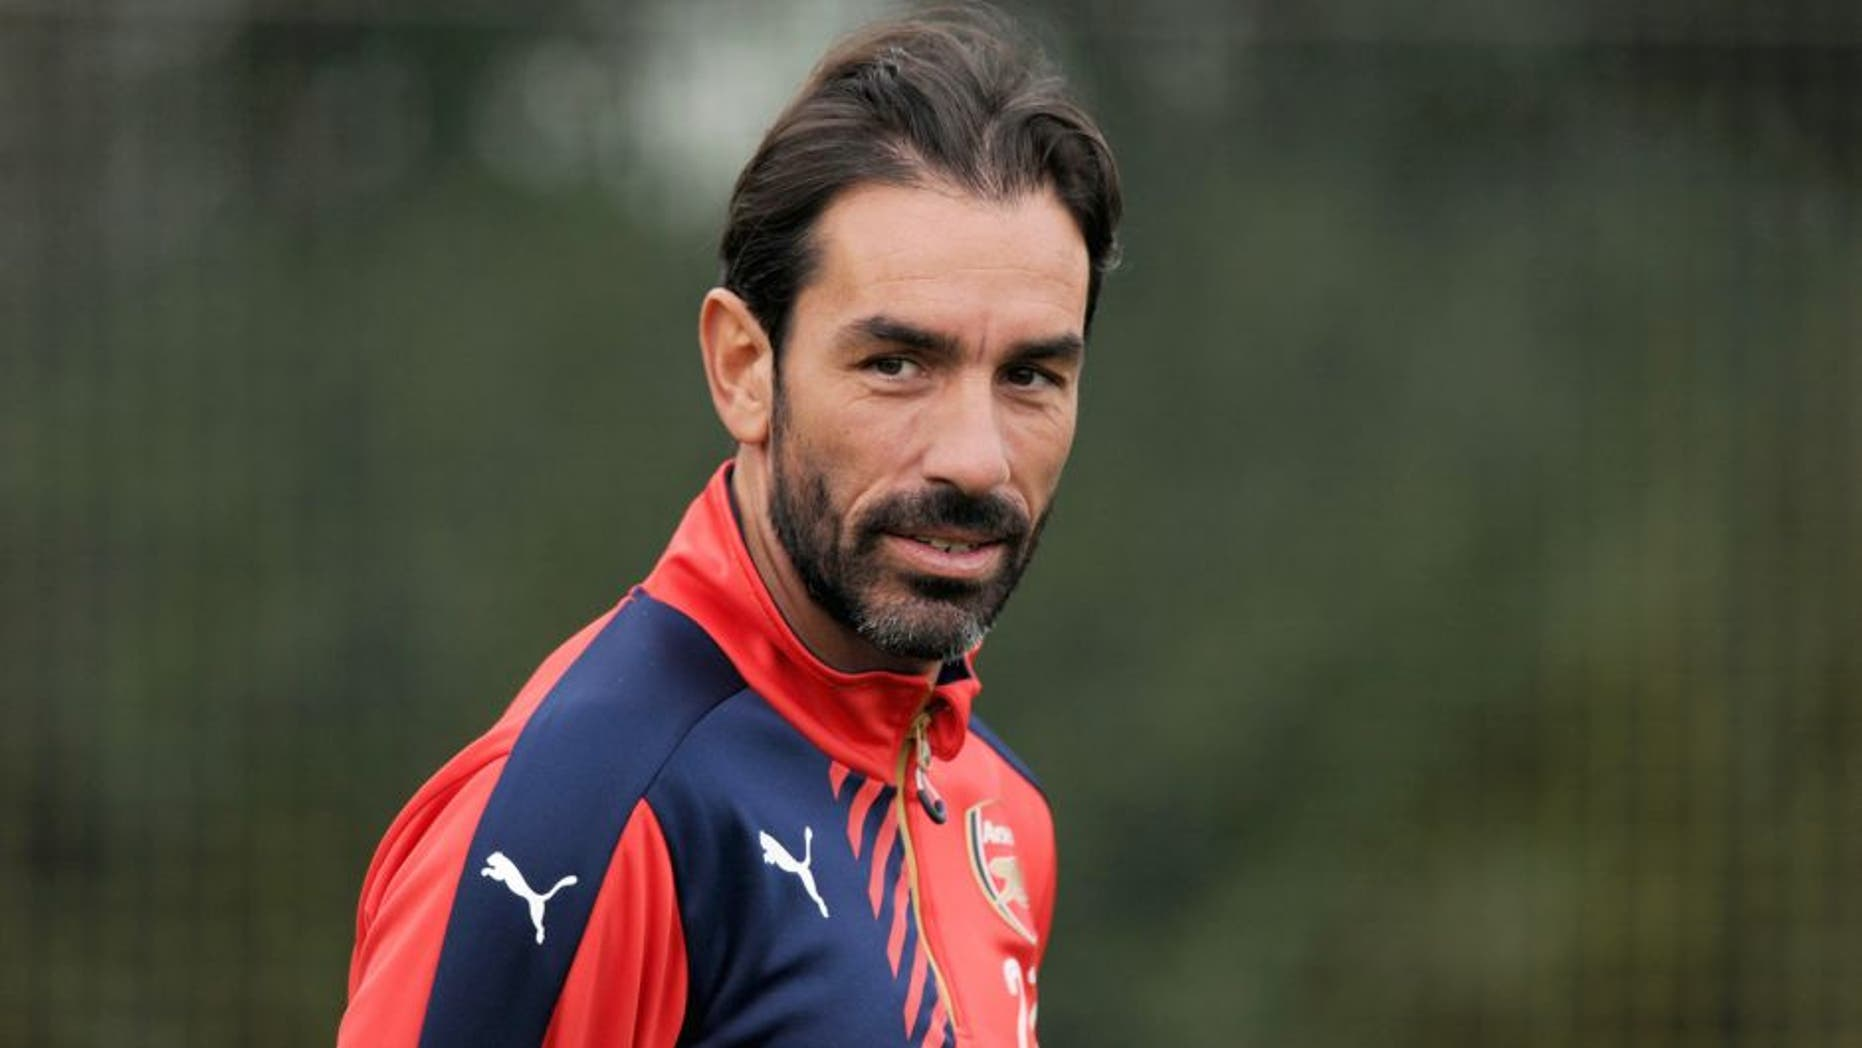 ST ALBANS, ENGLAND - OCTOBER 23: ex Arsenal player Robert Pires watches a training session at London Colney on October 23, 2015 in St Albans, England. (Photo by Stuart MacFarlane/Arsenal FC via Getty Images)